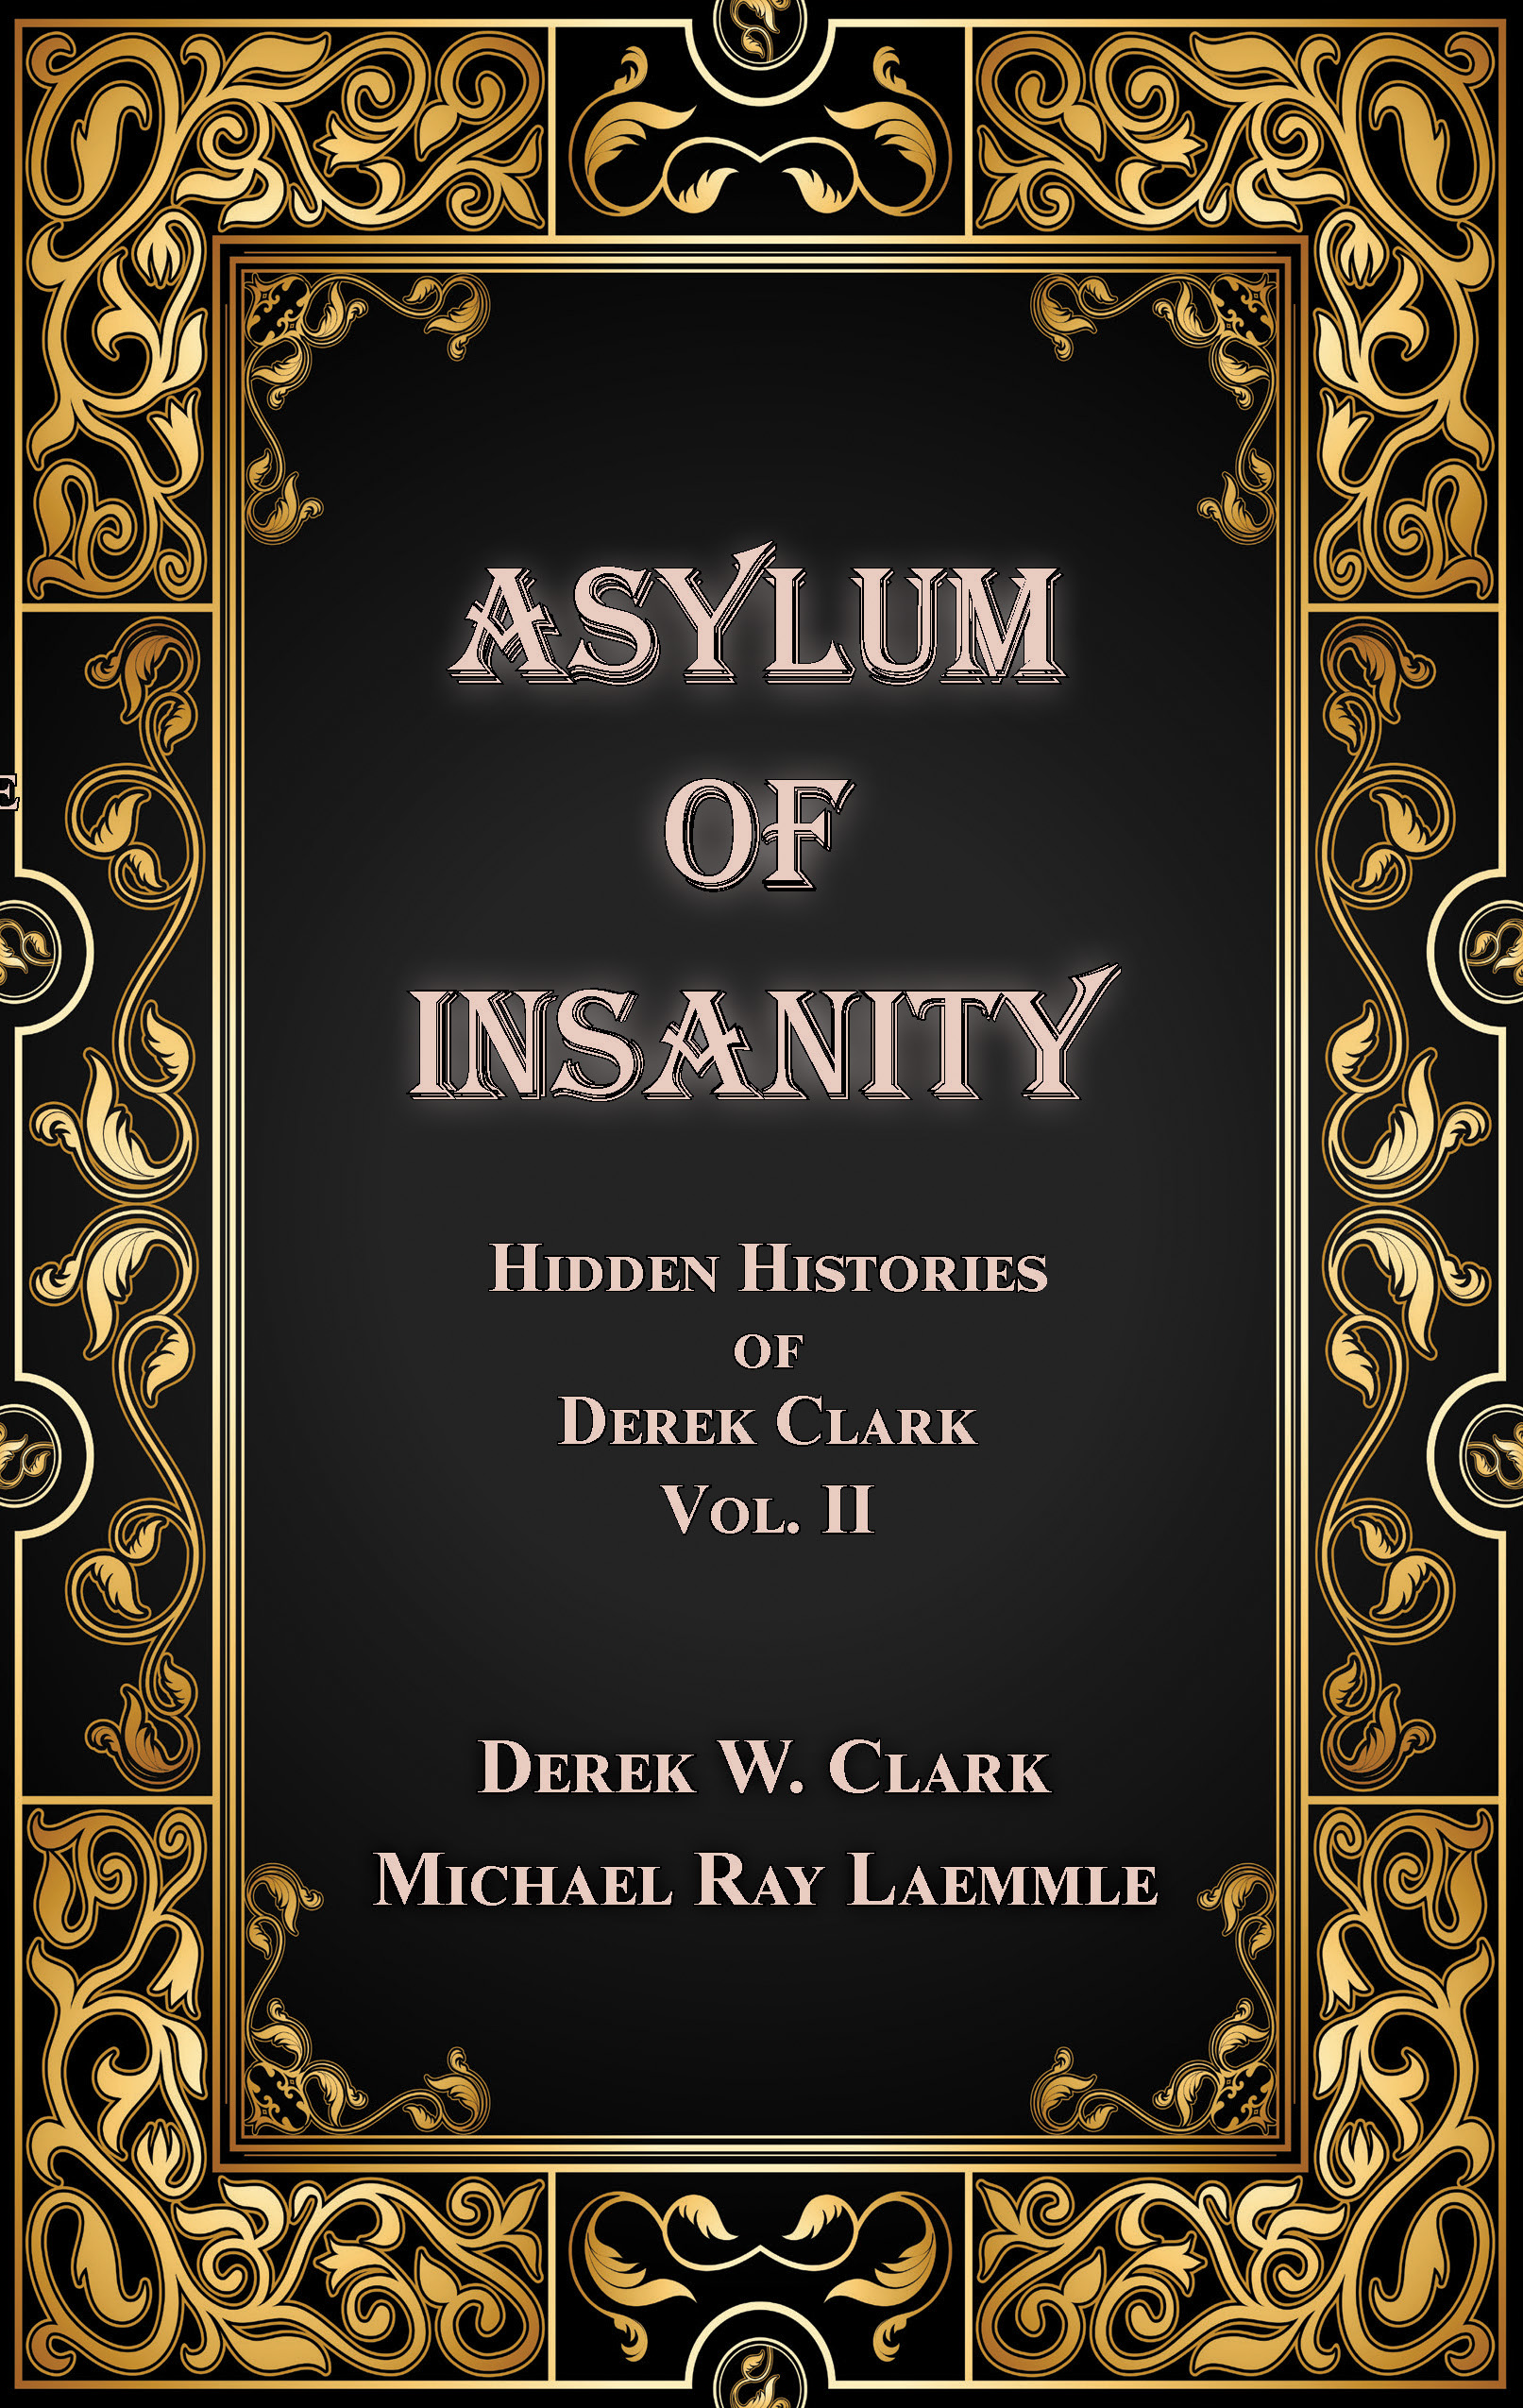 Classic Book Cover Up : Derek clark s book asylum of insanity is an awesome